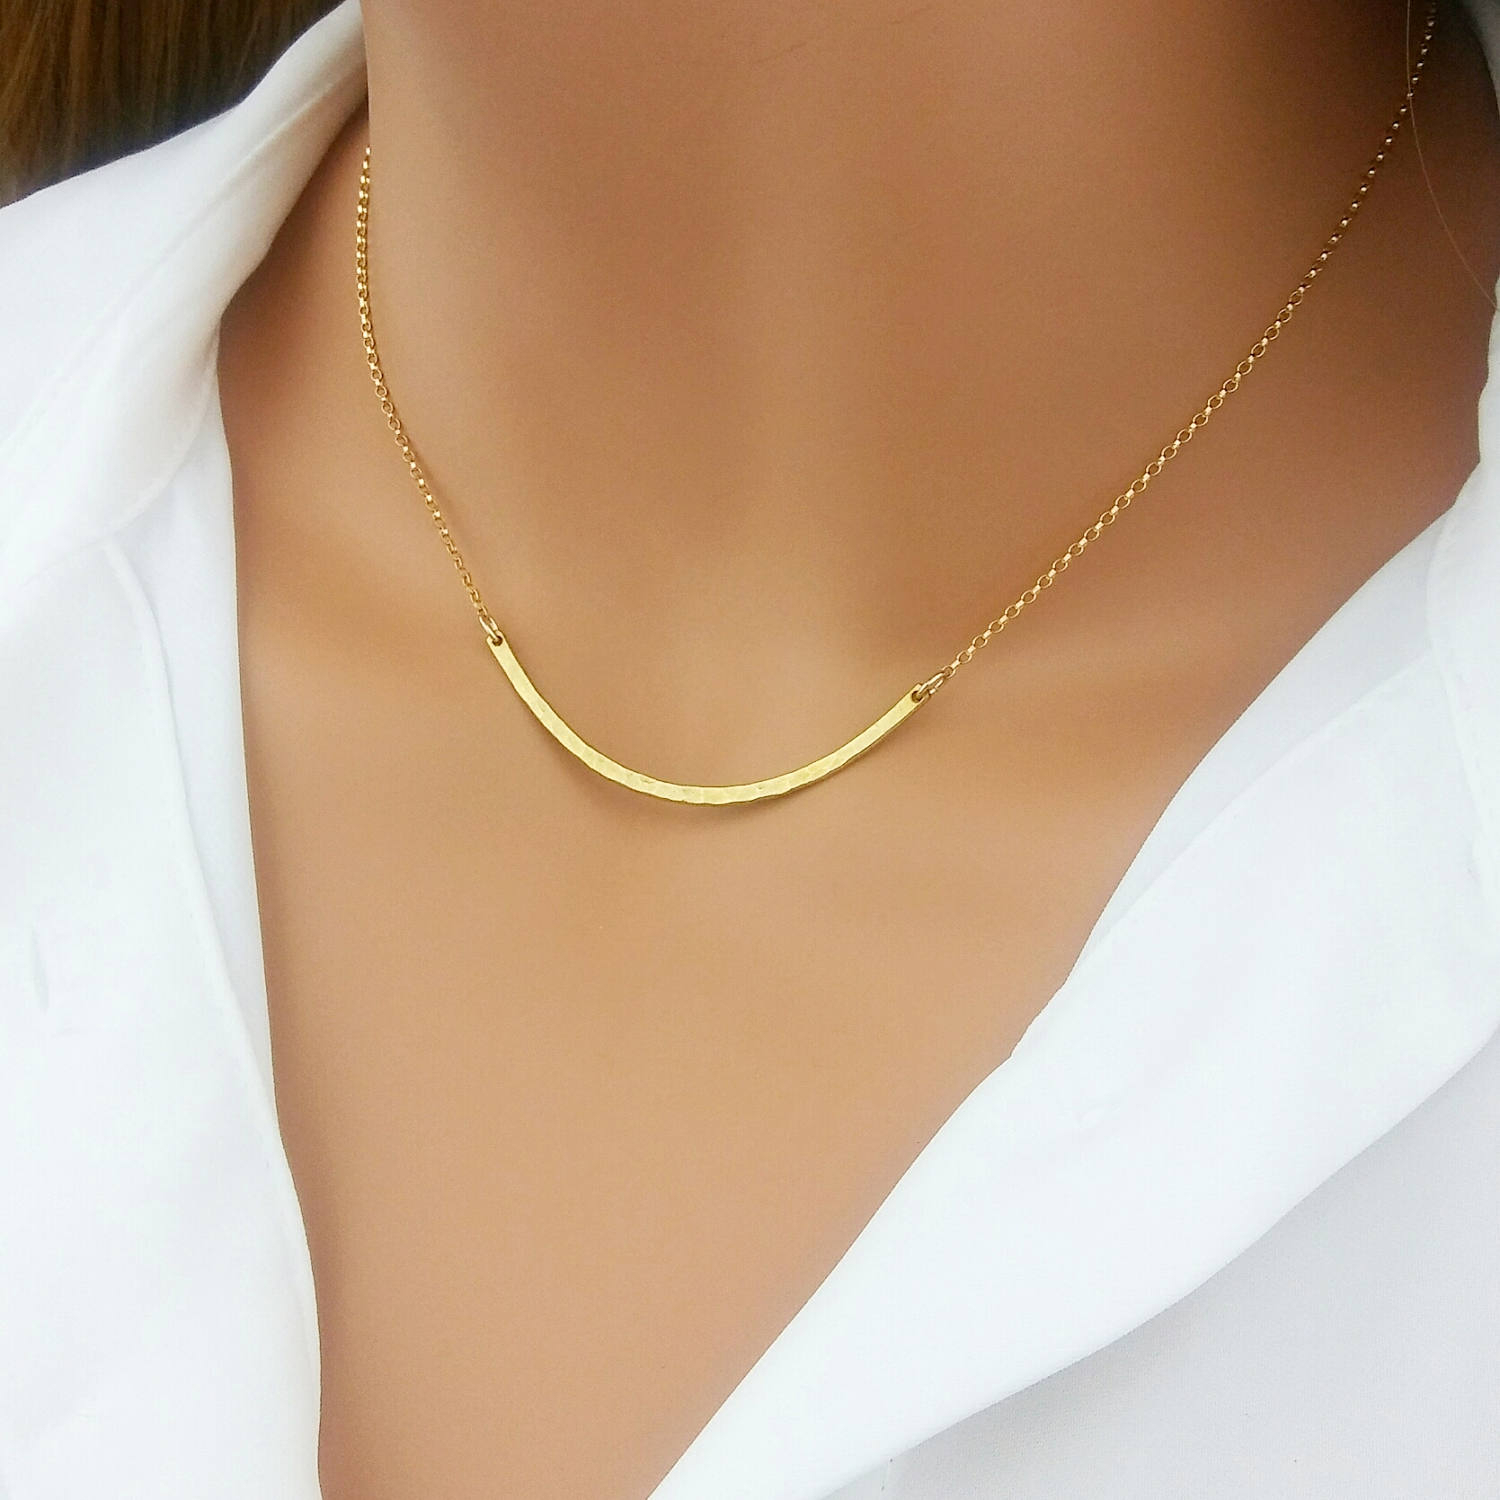 Modern Curved Bar Necklace, Minimalist Necklace, Skinny Bar Necklace, Minimalist Jewelry, Curve Bar, Bar Necklace, Layering Necklace With Regard To Most Current Sparkling Curved Bar Necklaces (View 16 of 25)